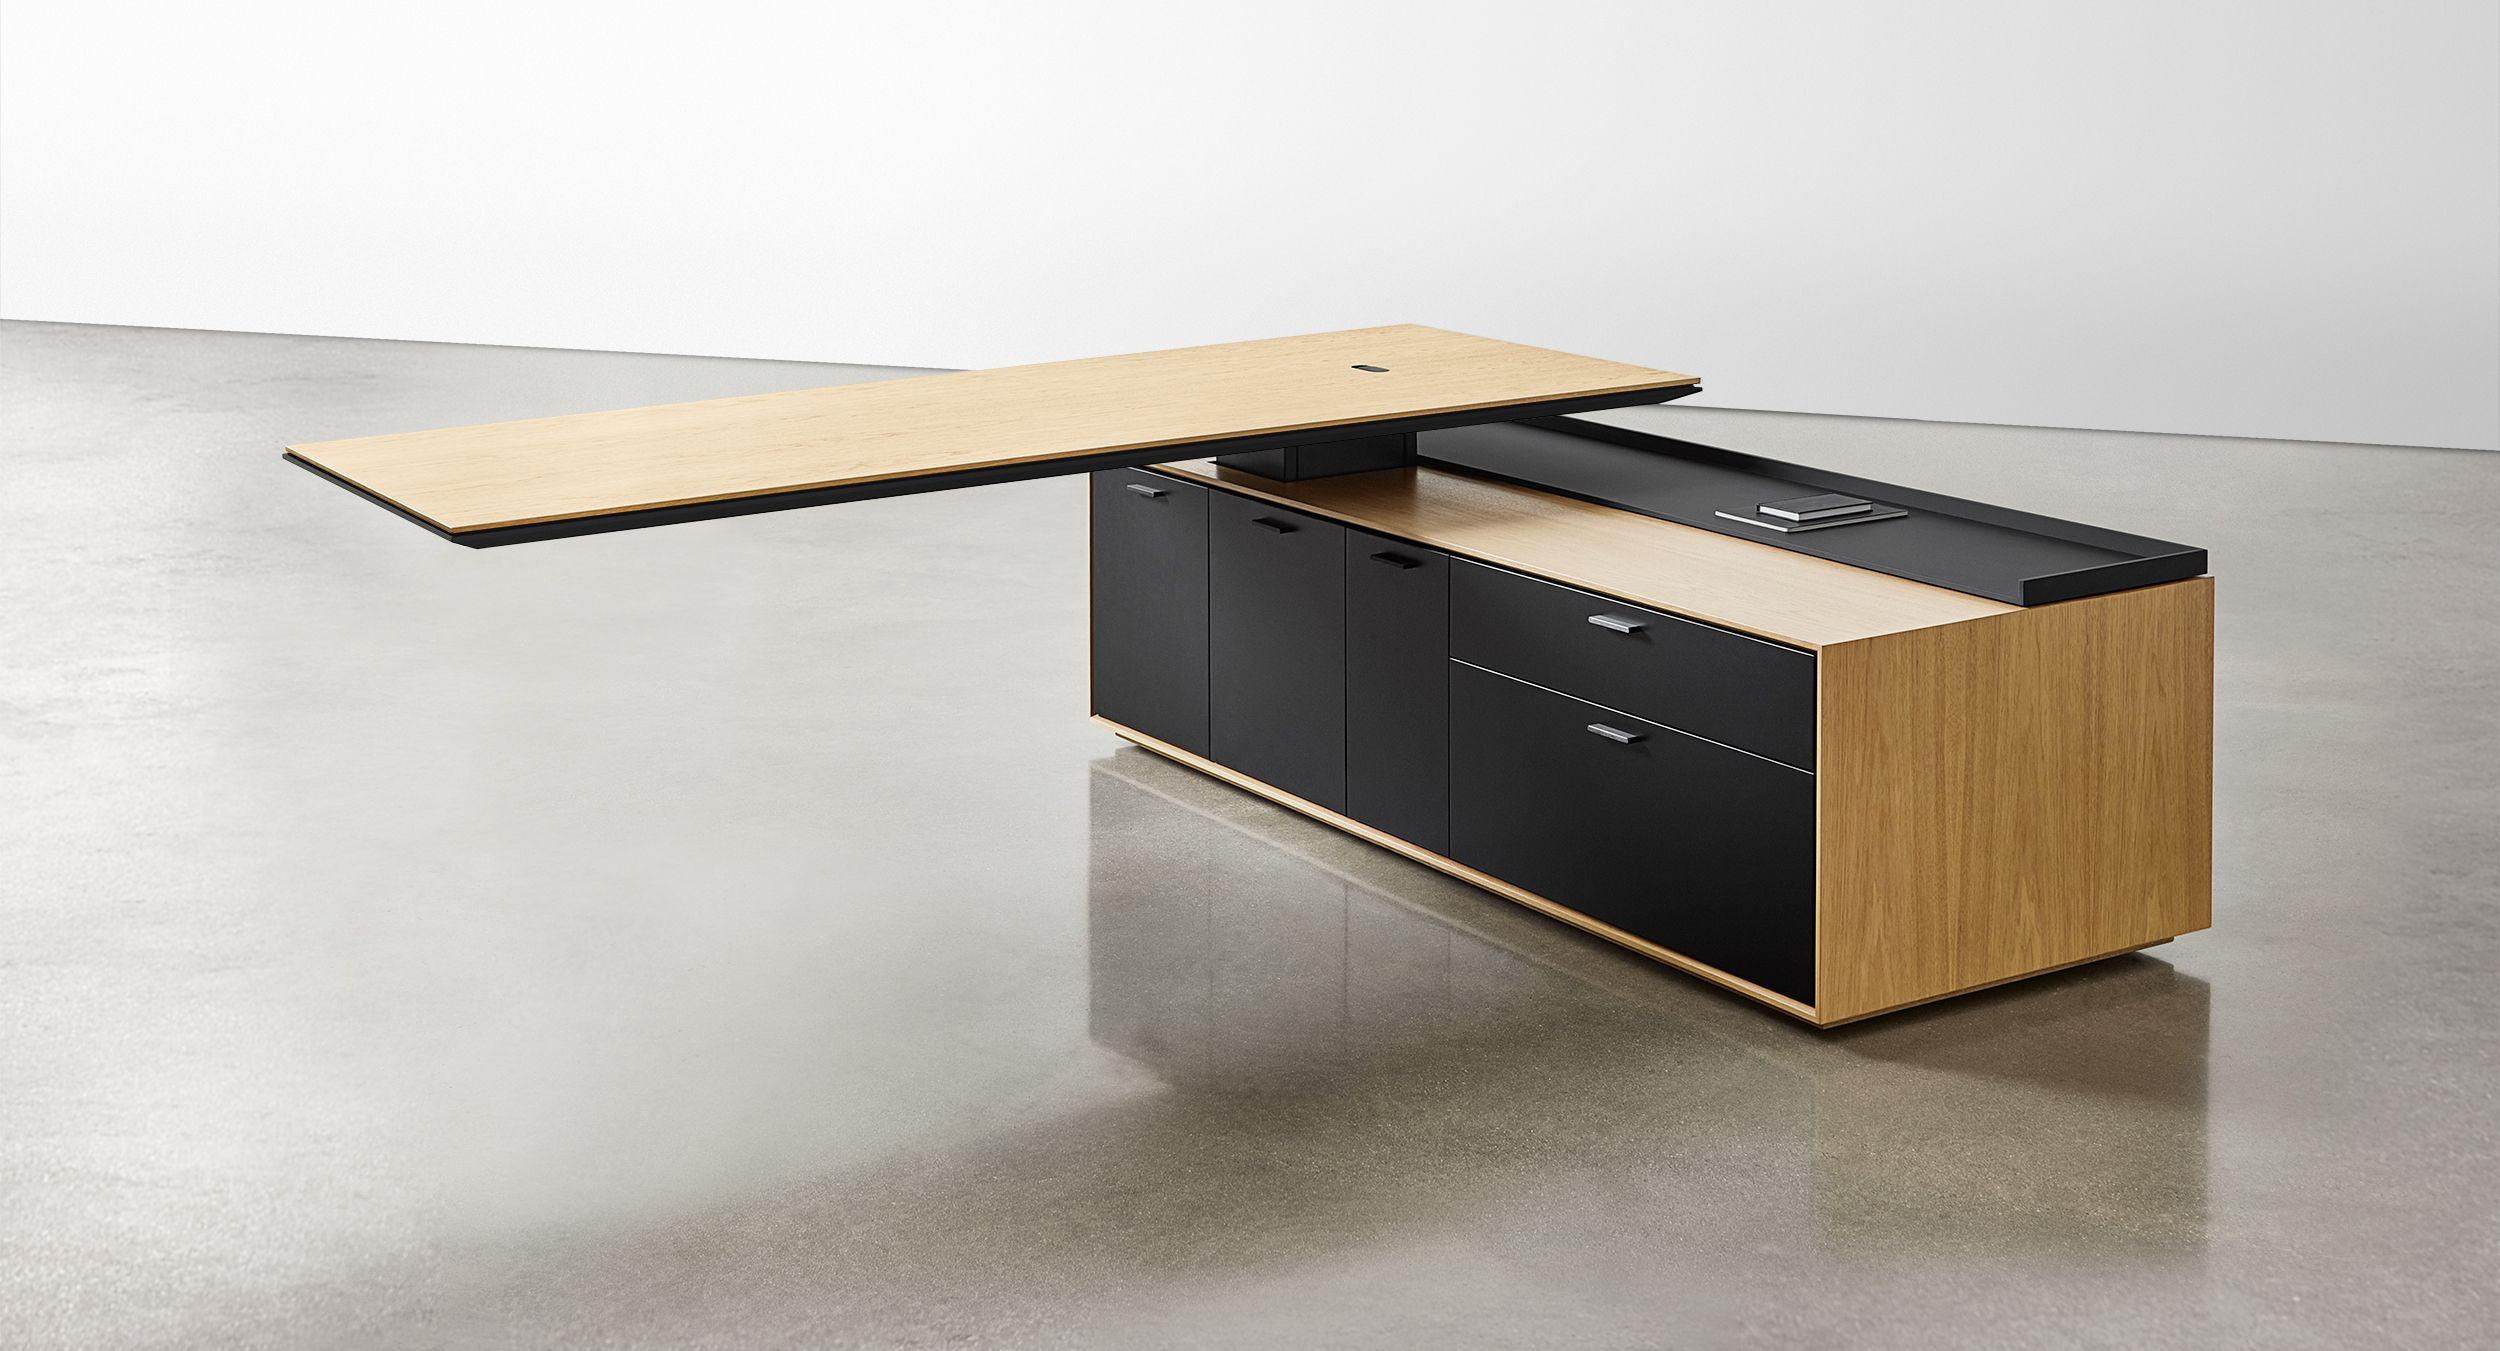 Defy gravity with an adjustable-height, cantilevered desk surface.